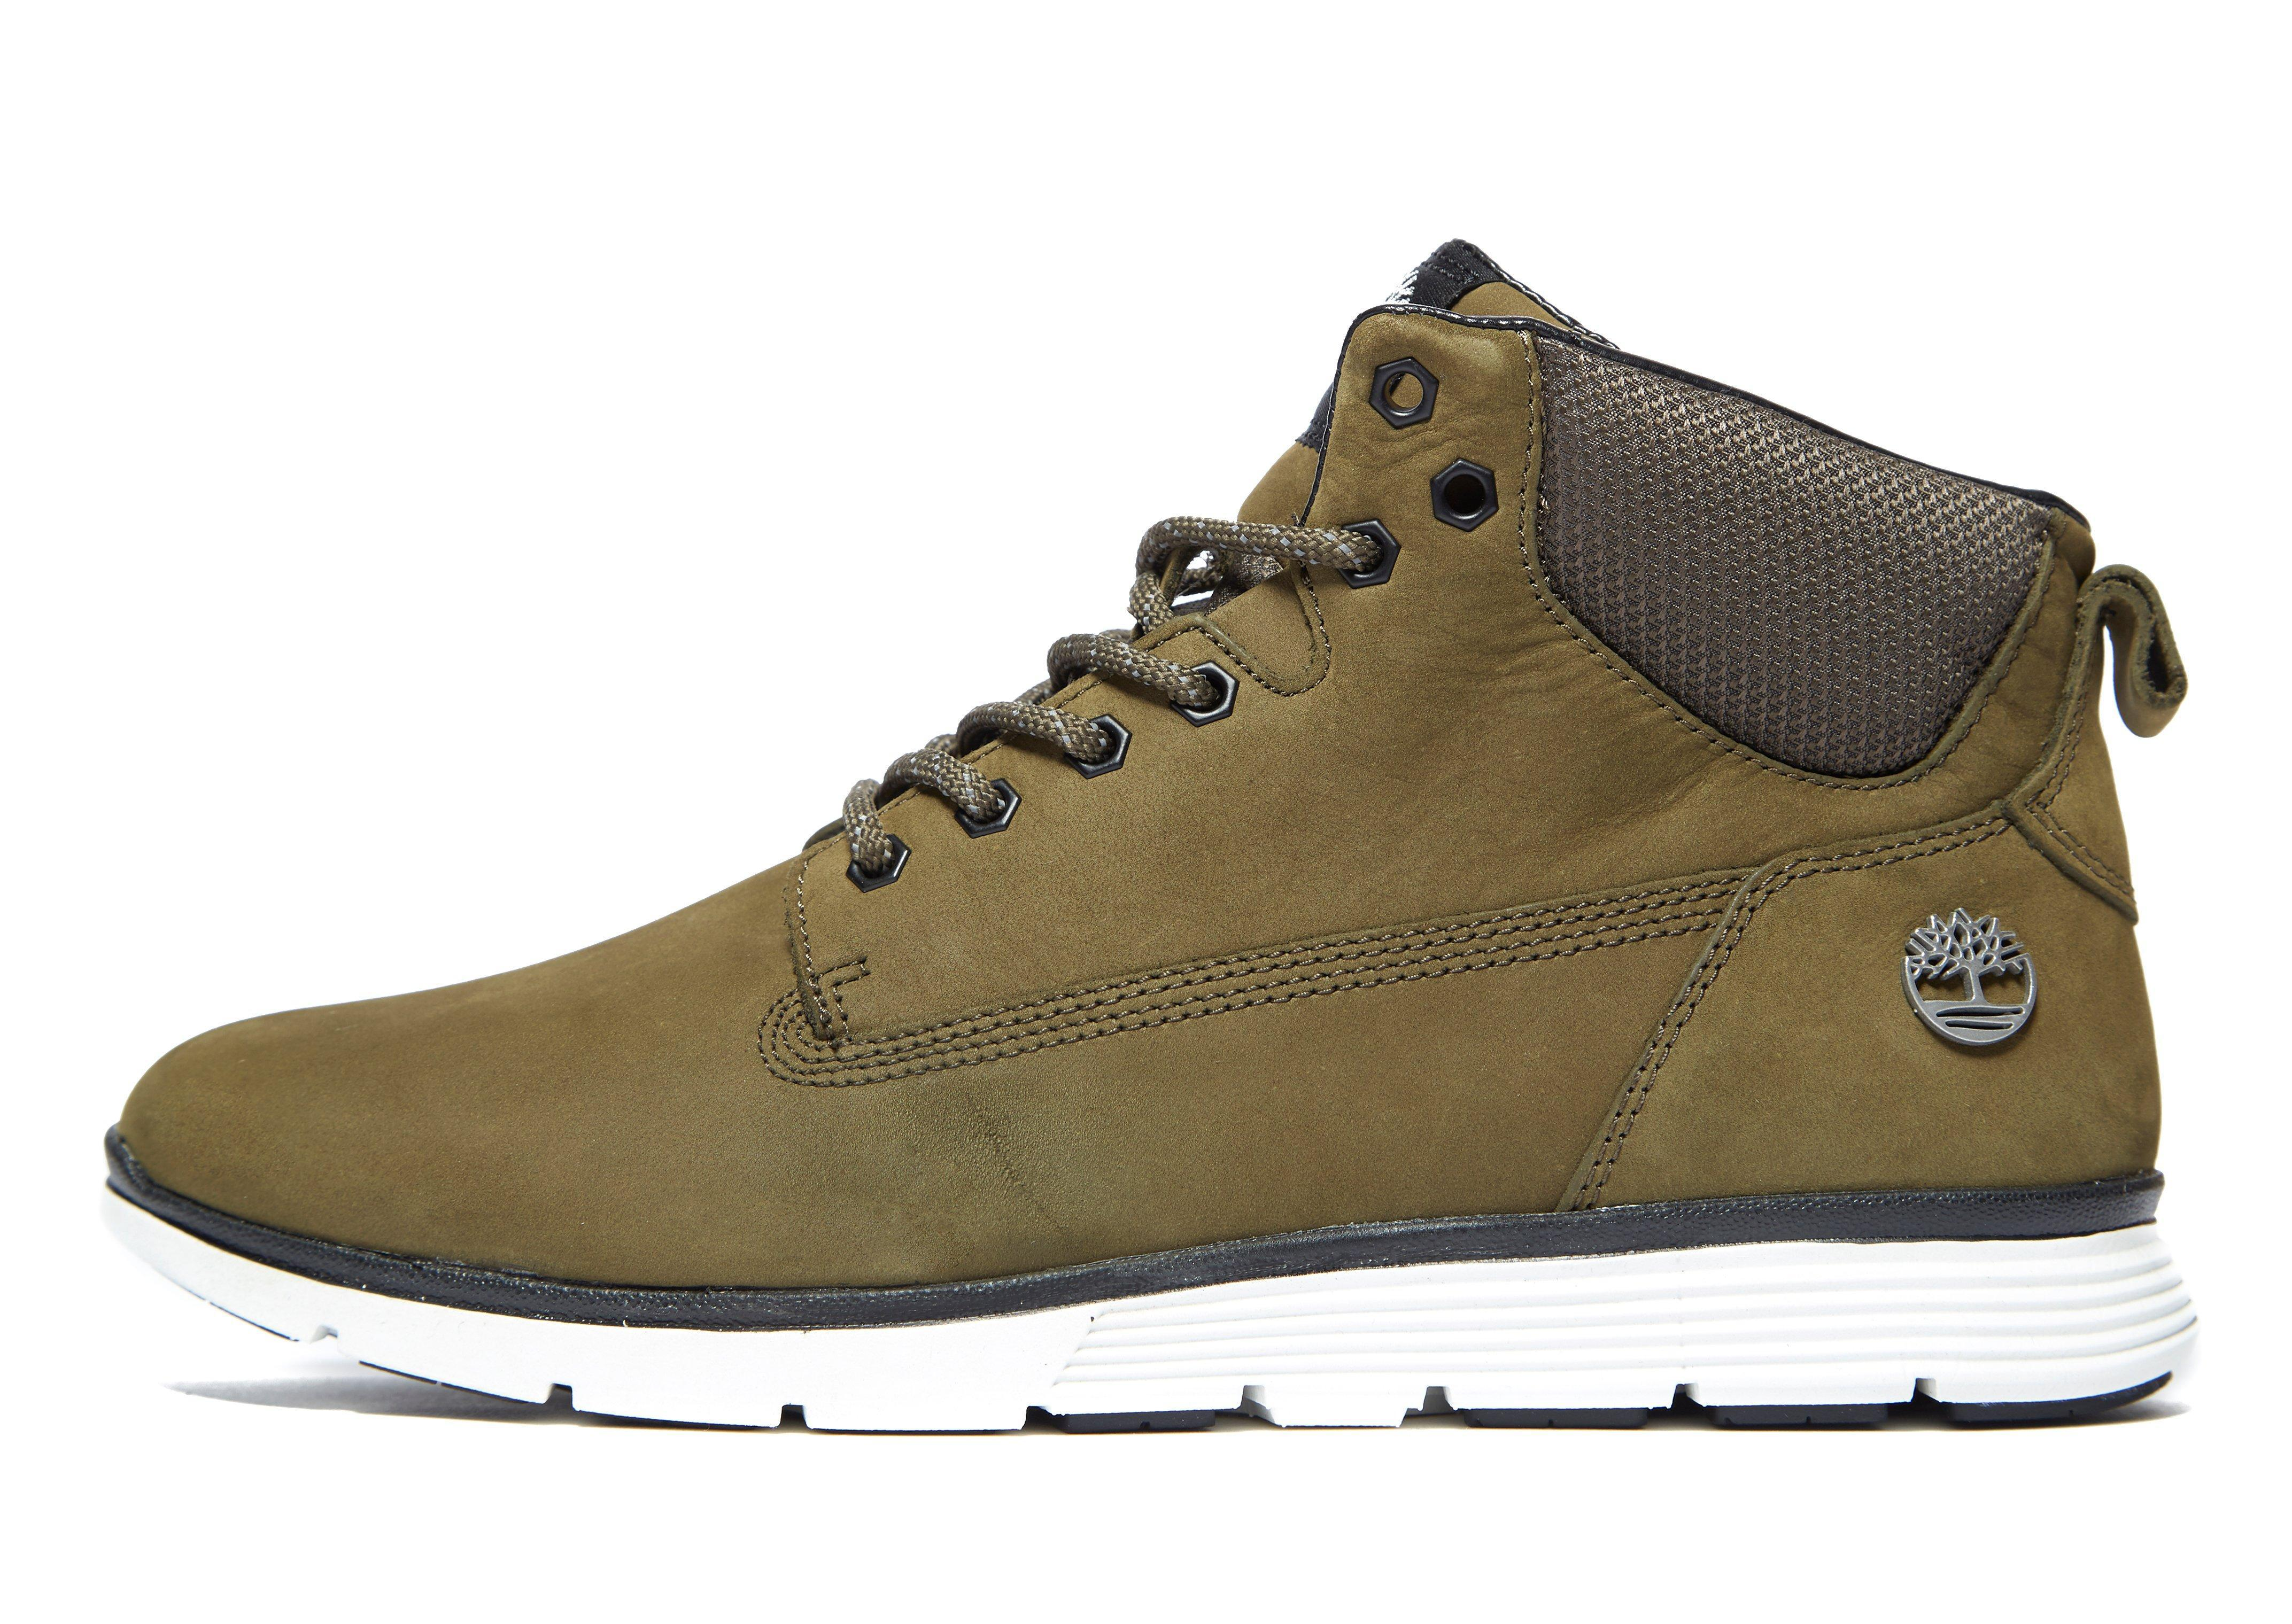 Timberland Leather Killington In Olive White Green For